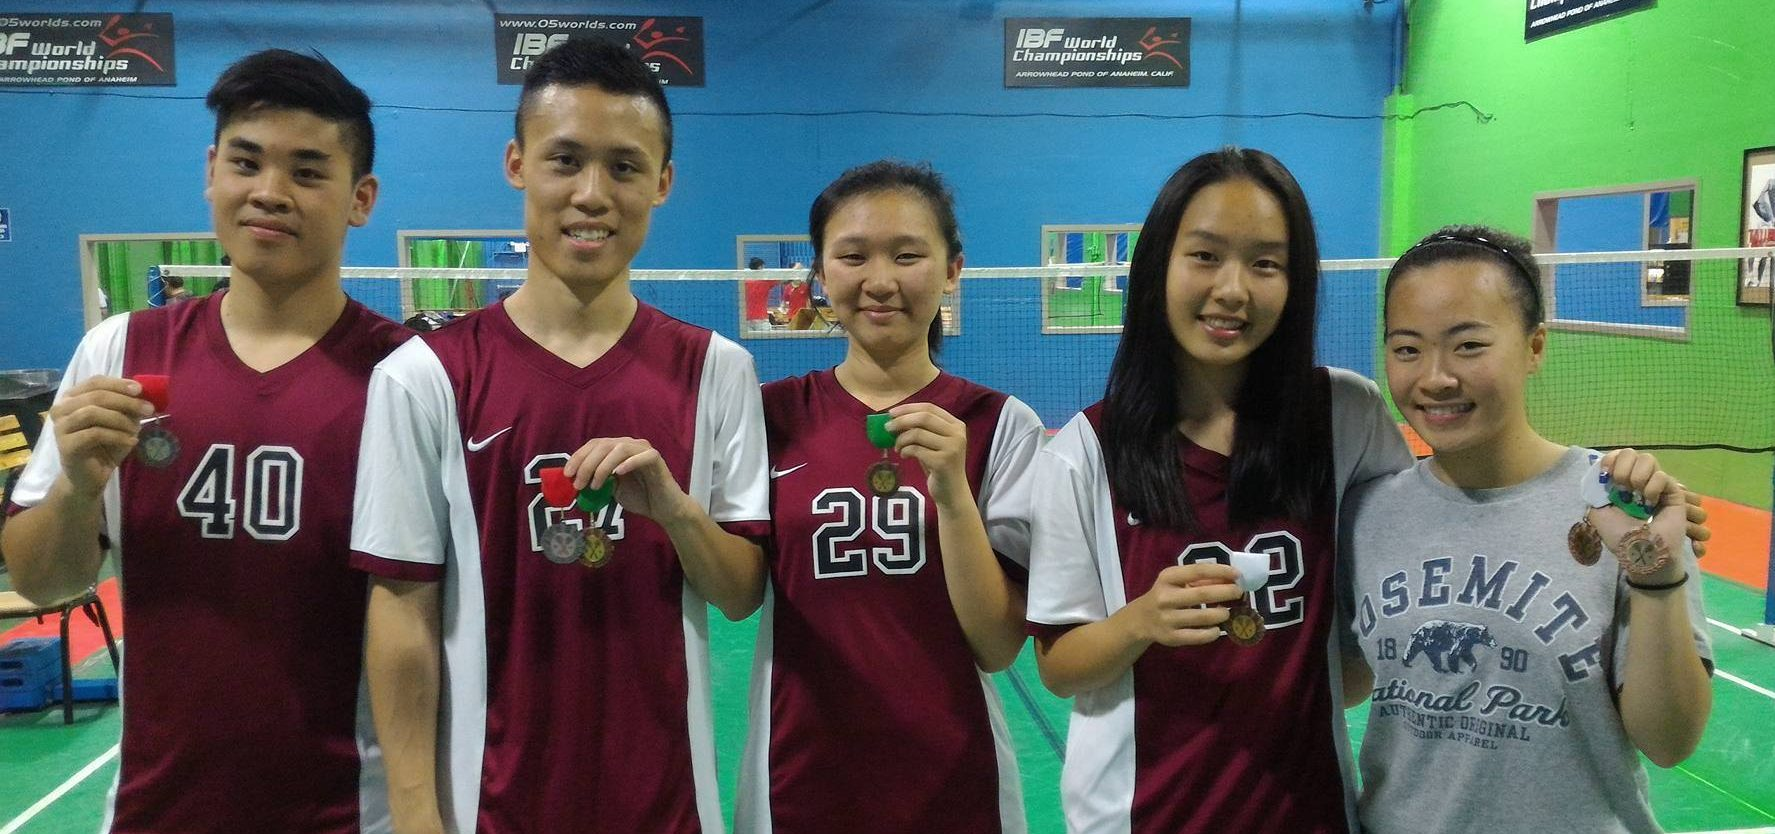 Members of the varsity badminton team pose with their Almont League medals. From left to right: Sophomore Kevin Chen, senior Lawrence Chen, junior Jessica Lee, freshman Emily Zhou, and senior Kimberley Wong. COURTESY OF LAWRENCE CHEN